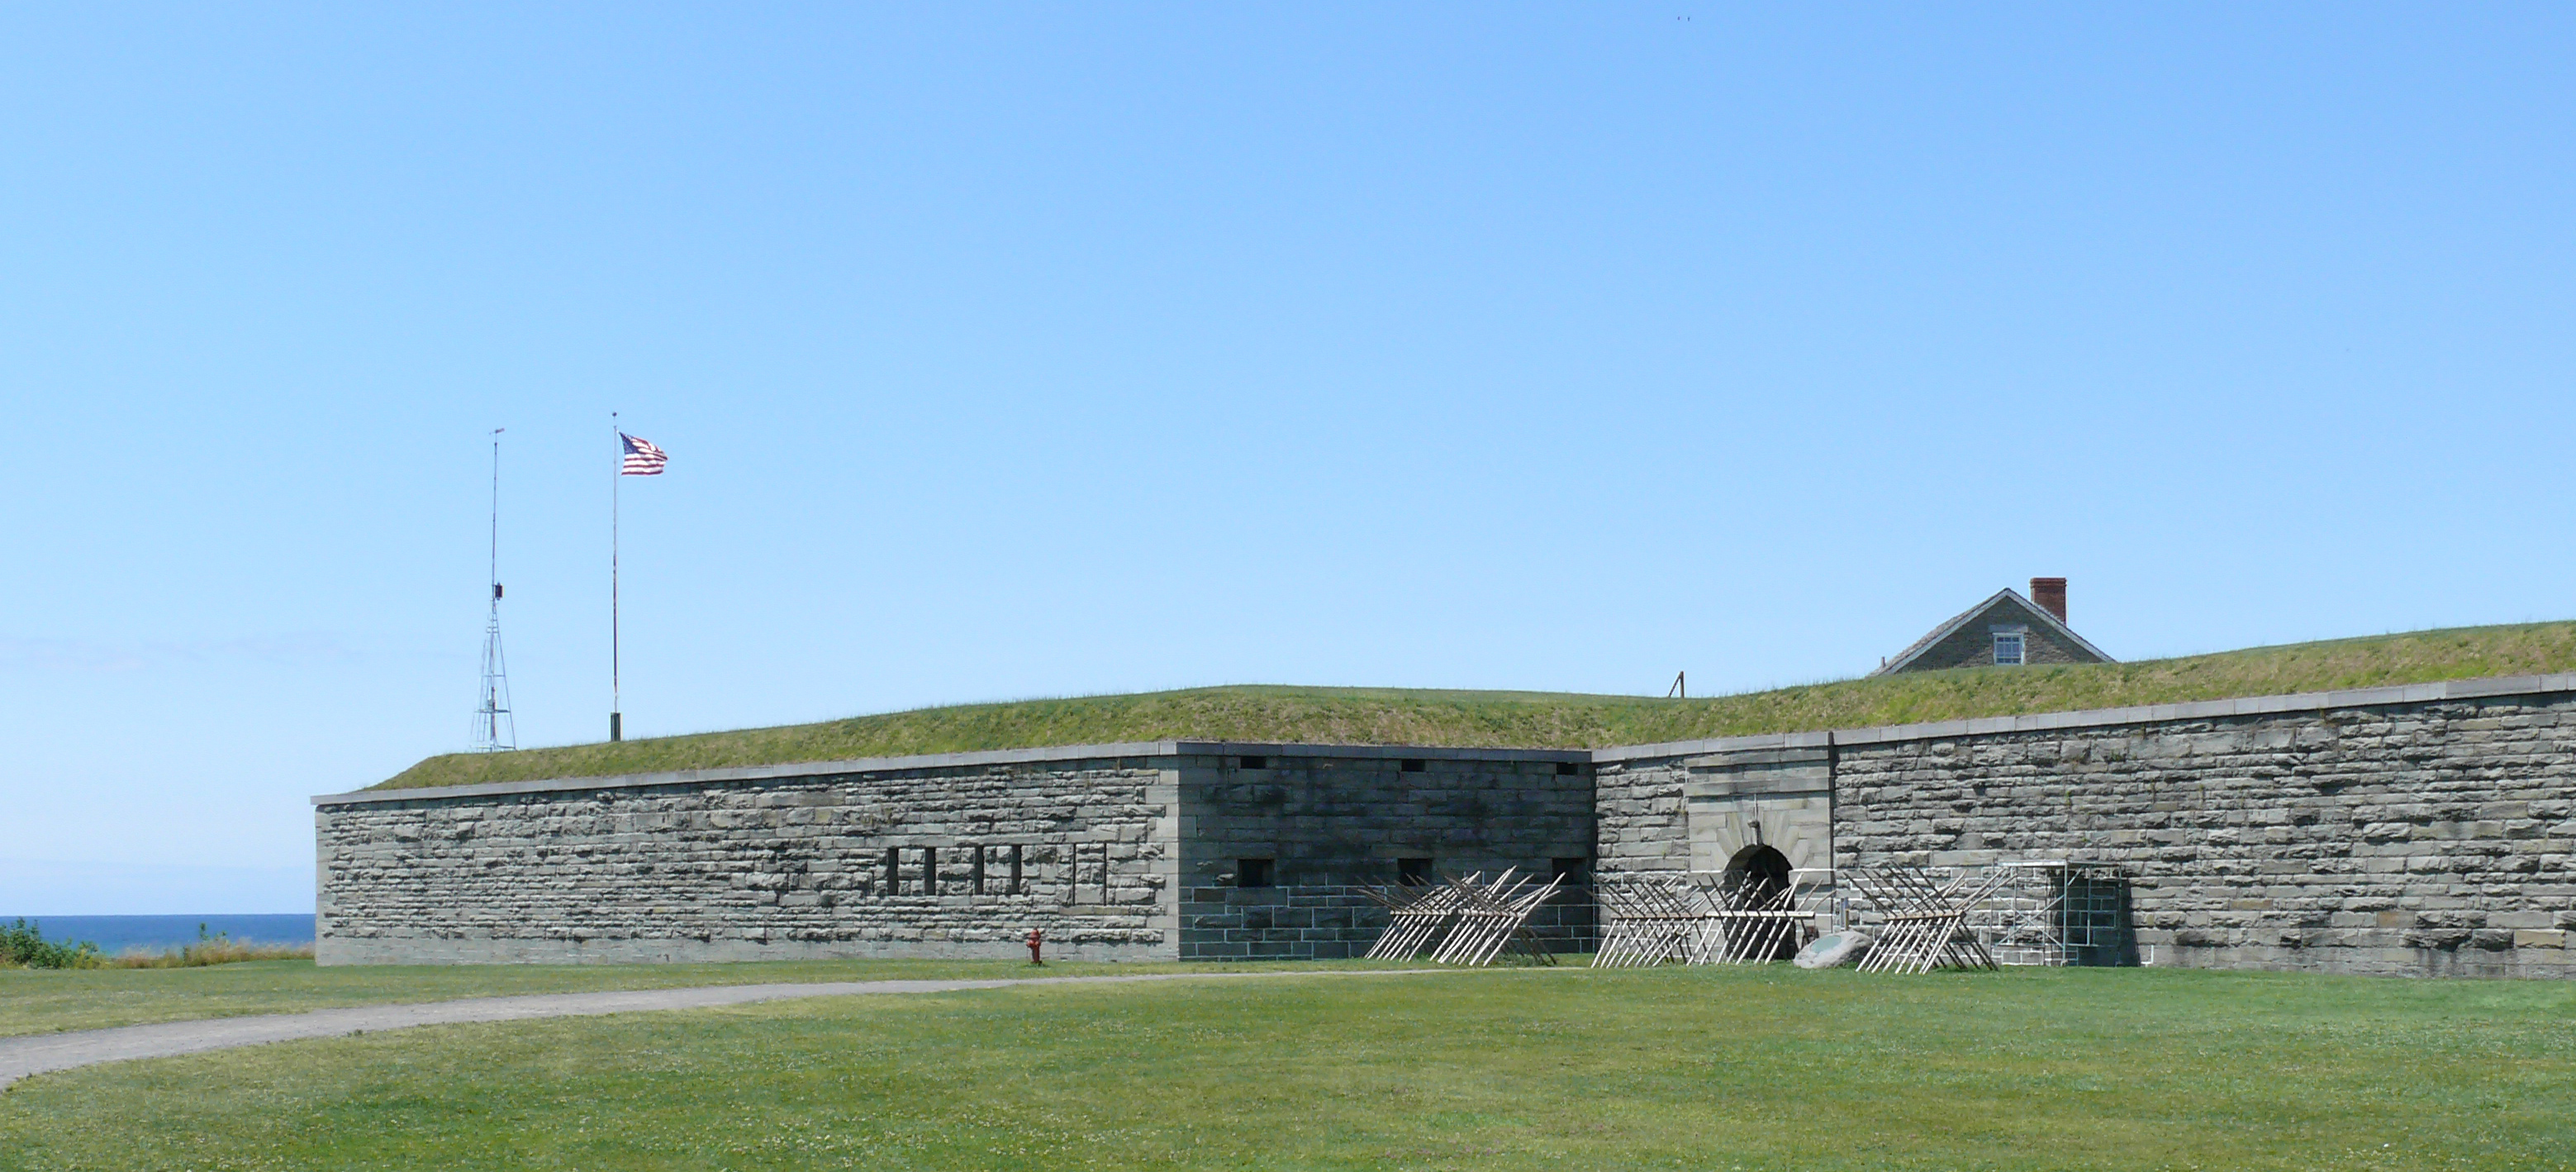 Ontario (NY) United States  city pictures gallery : fort ontario, New York, United States What happens in fort ontario ...